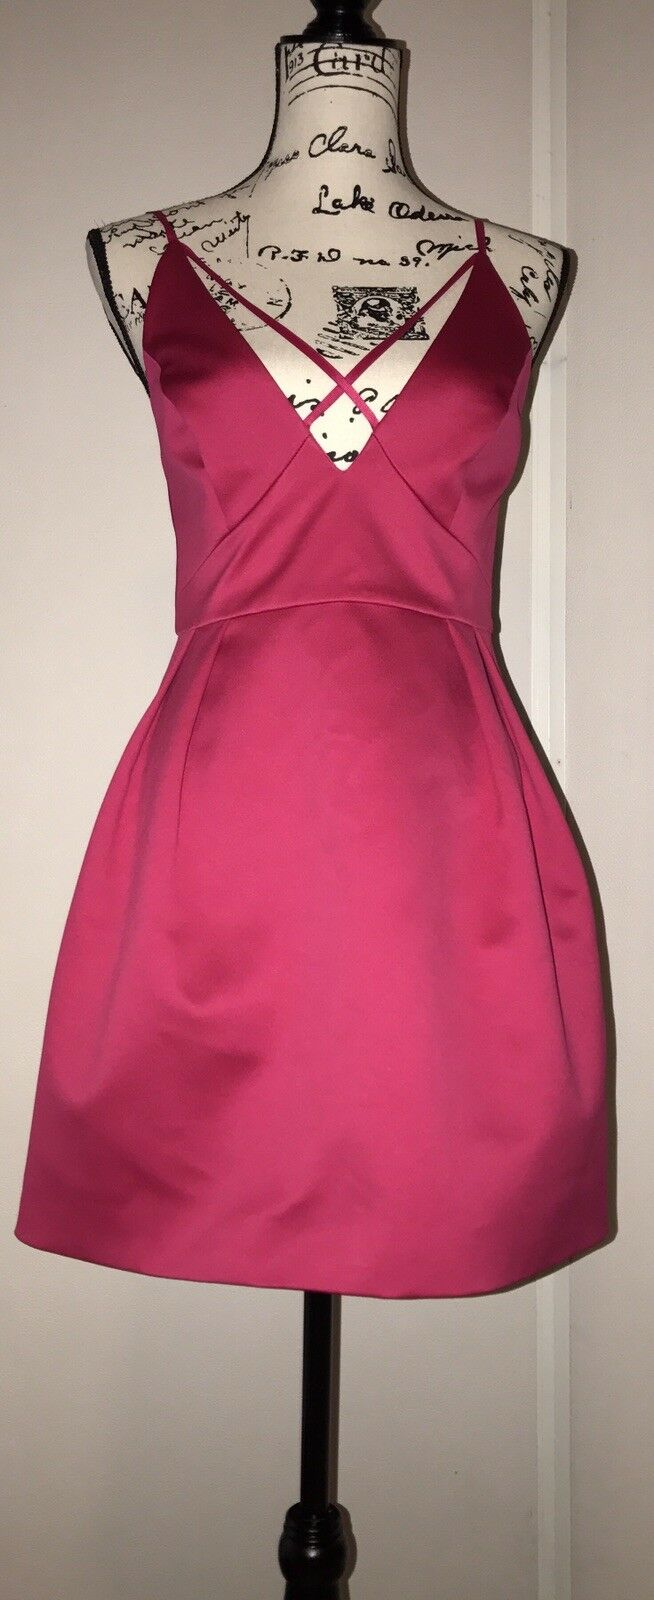 Topshop Cross Front Mini Dress Pink Size 6 US